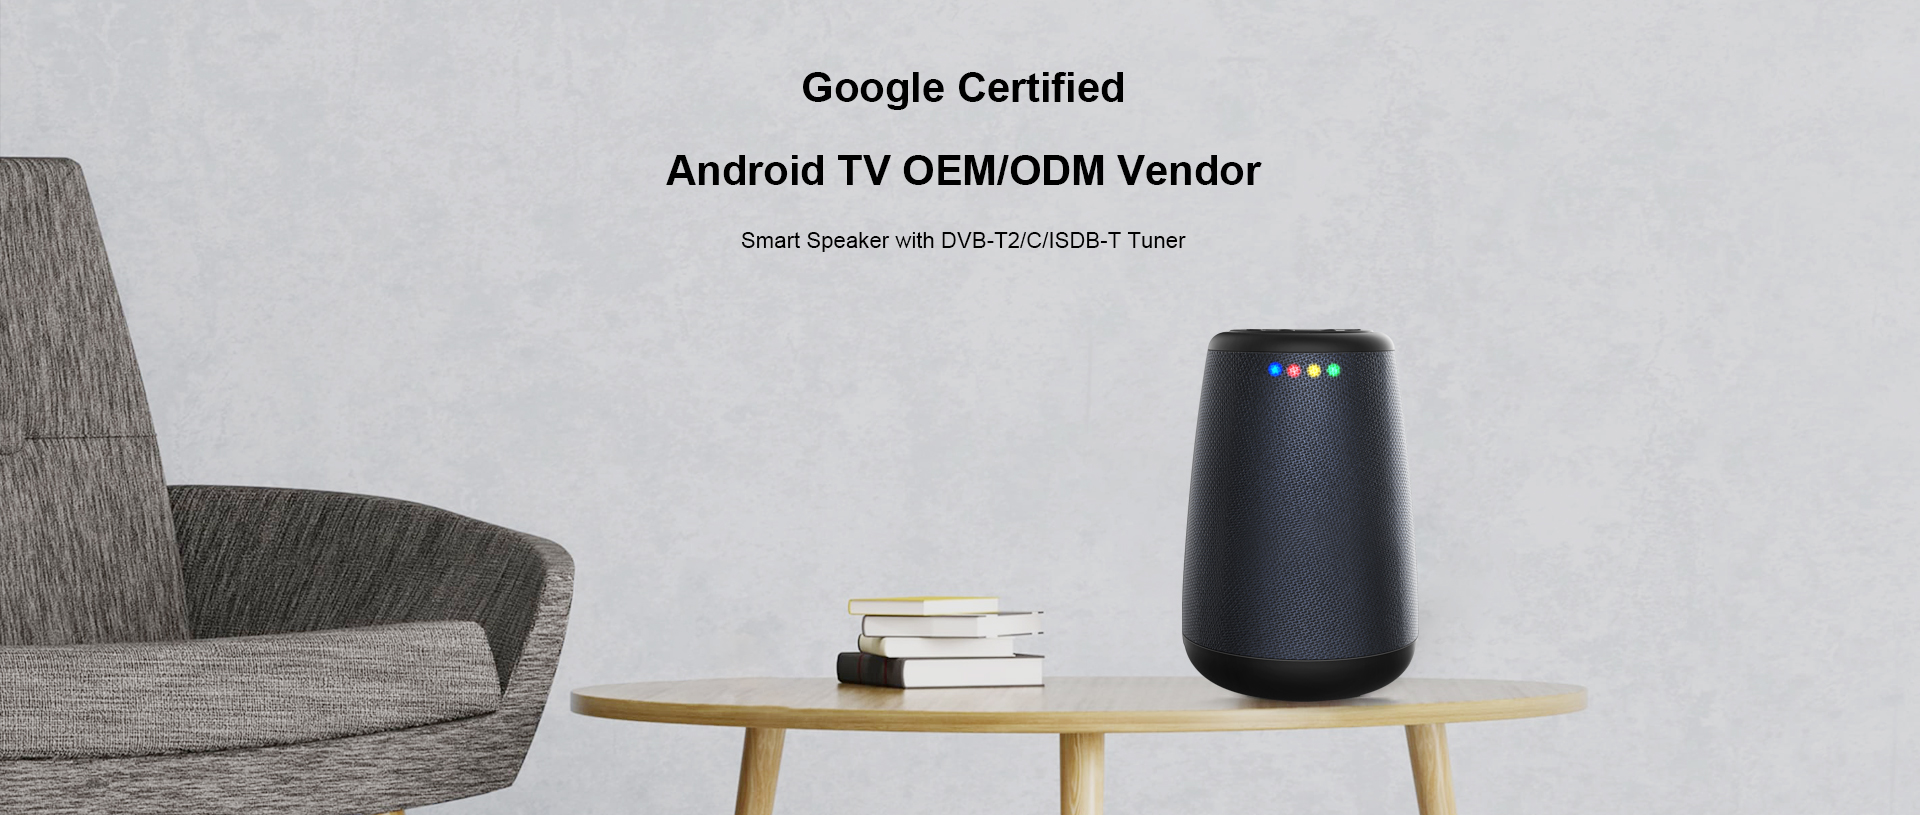 Google Certified Android TV OEM/ODM Vendor